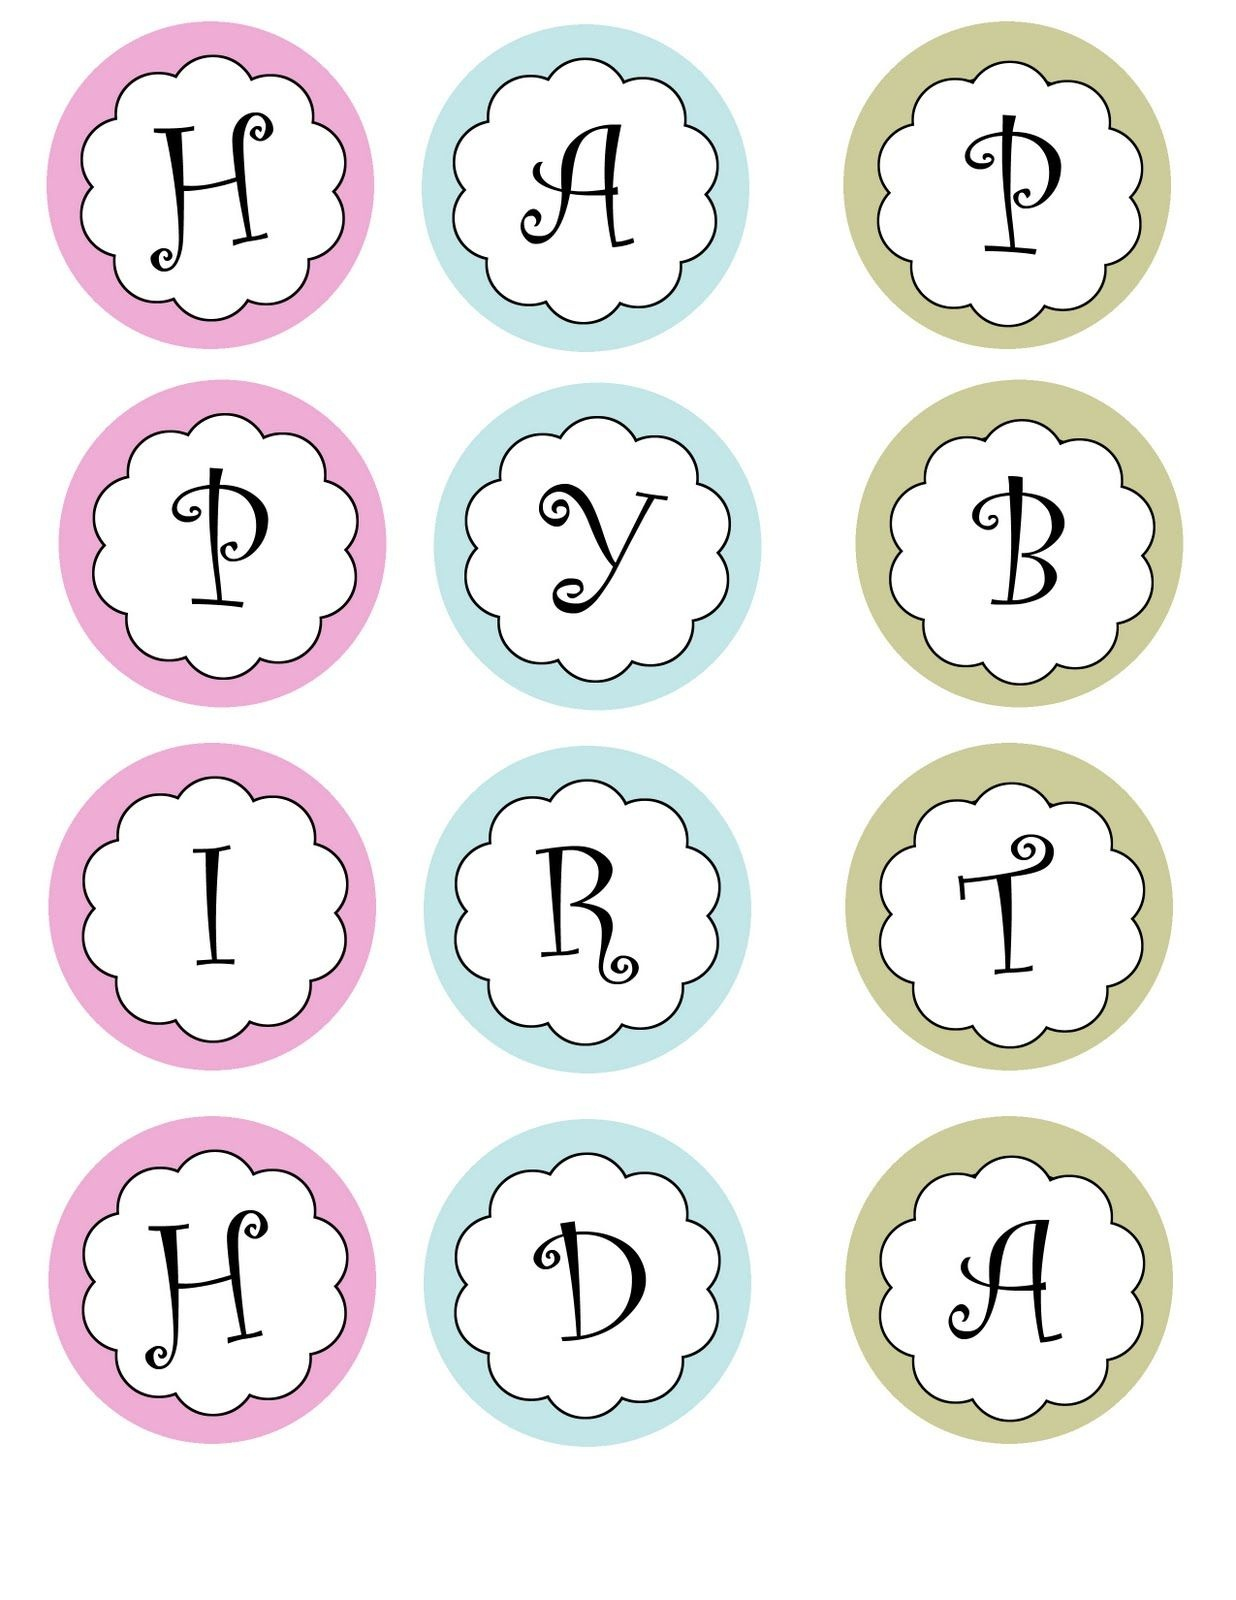 Printable Banners Templates Free   Print Your Own Birthday Banner - Printable Banner Letters Template Free